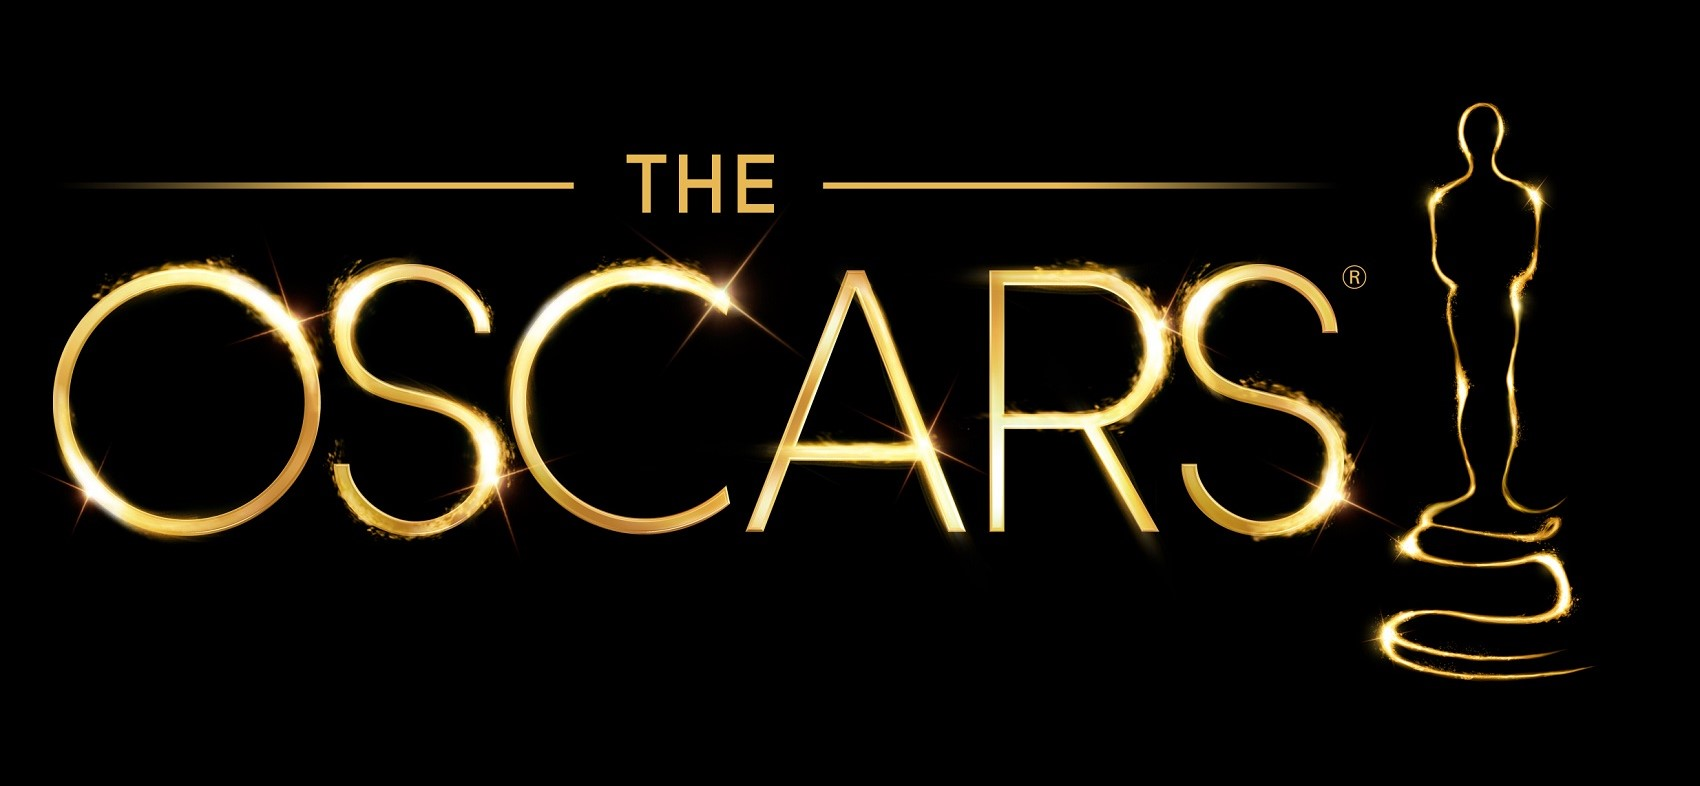 The Academy Awards at spillwords.com